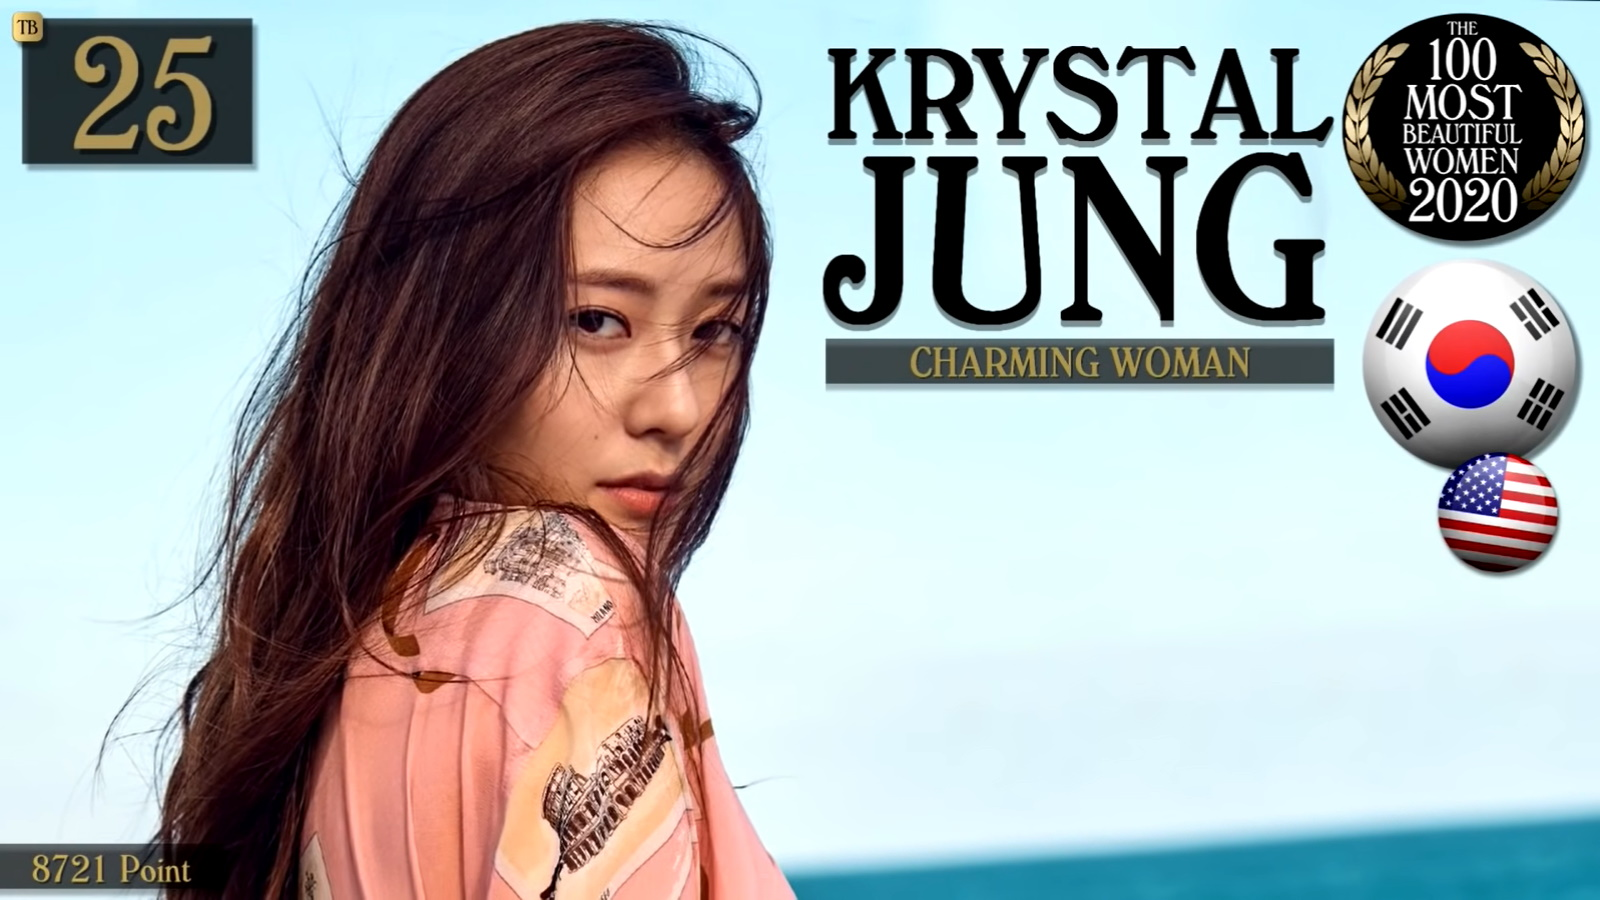 Krystal Jung - The 100 Most Beautiful Women Of 2020